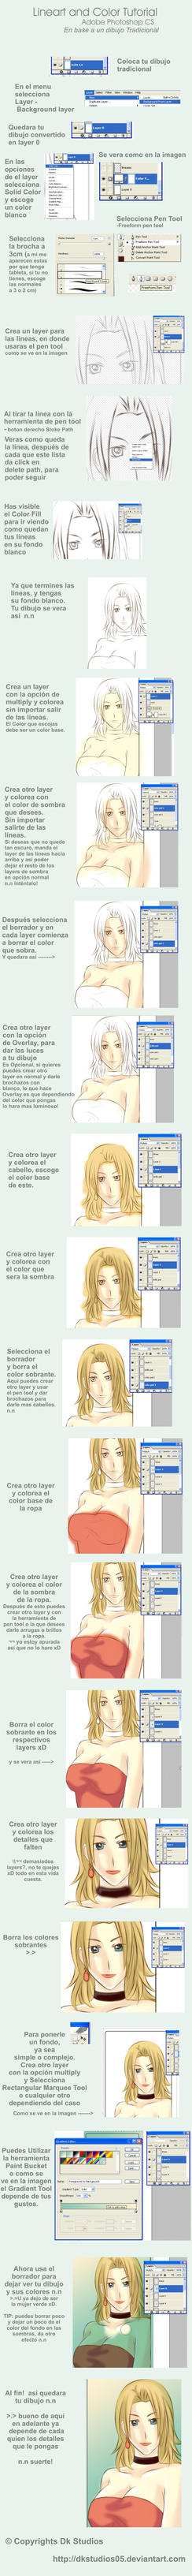 lineart and color Tutorial by DKSTUDIOS05